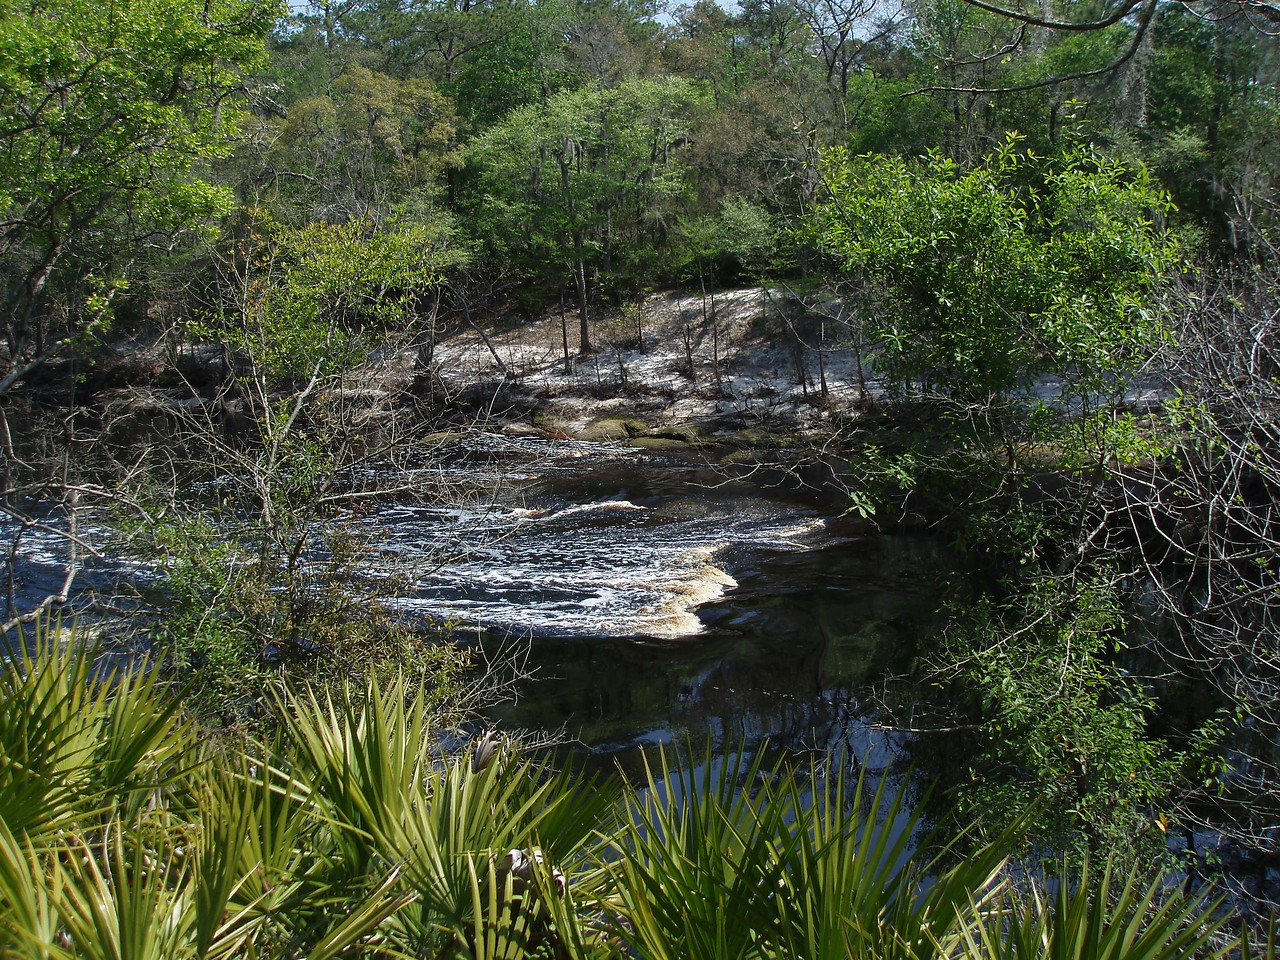 Views of the Suwannee River from the Florida Trail<br /> PHOTO CREDIT: Robert Coveney / Florida Trail Association